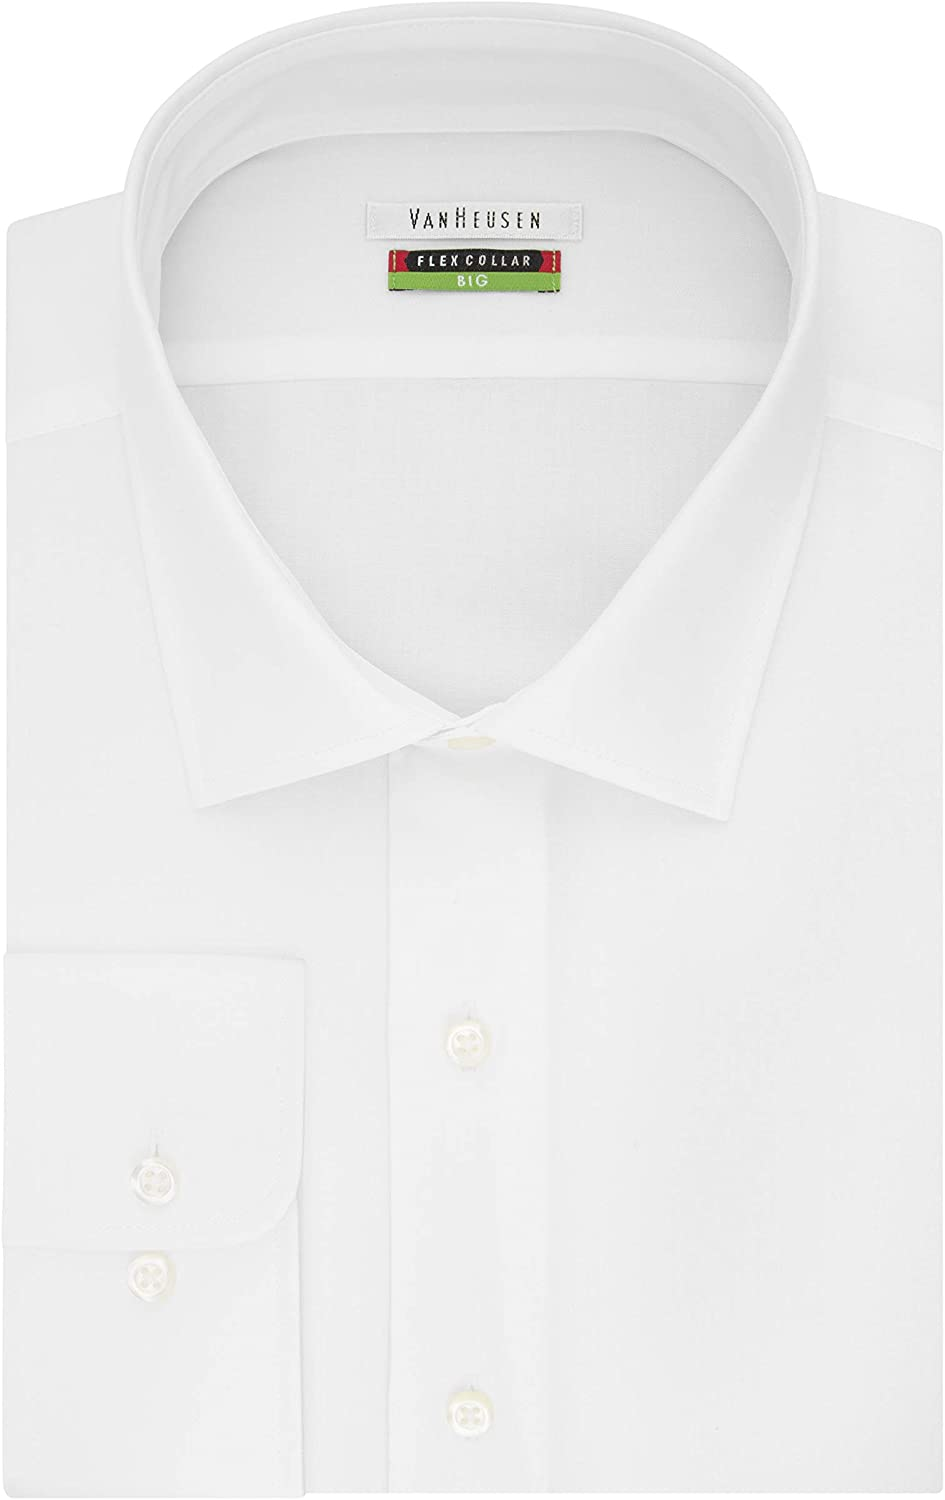 Van Heusen Men's BIG FIT Dress Shirts Flex Collar Solid (Big and Tall): Clothing